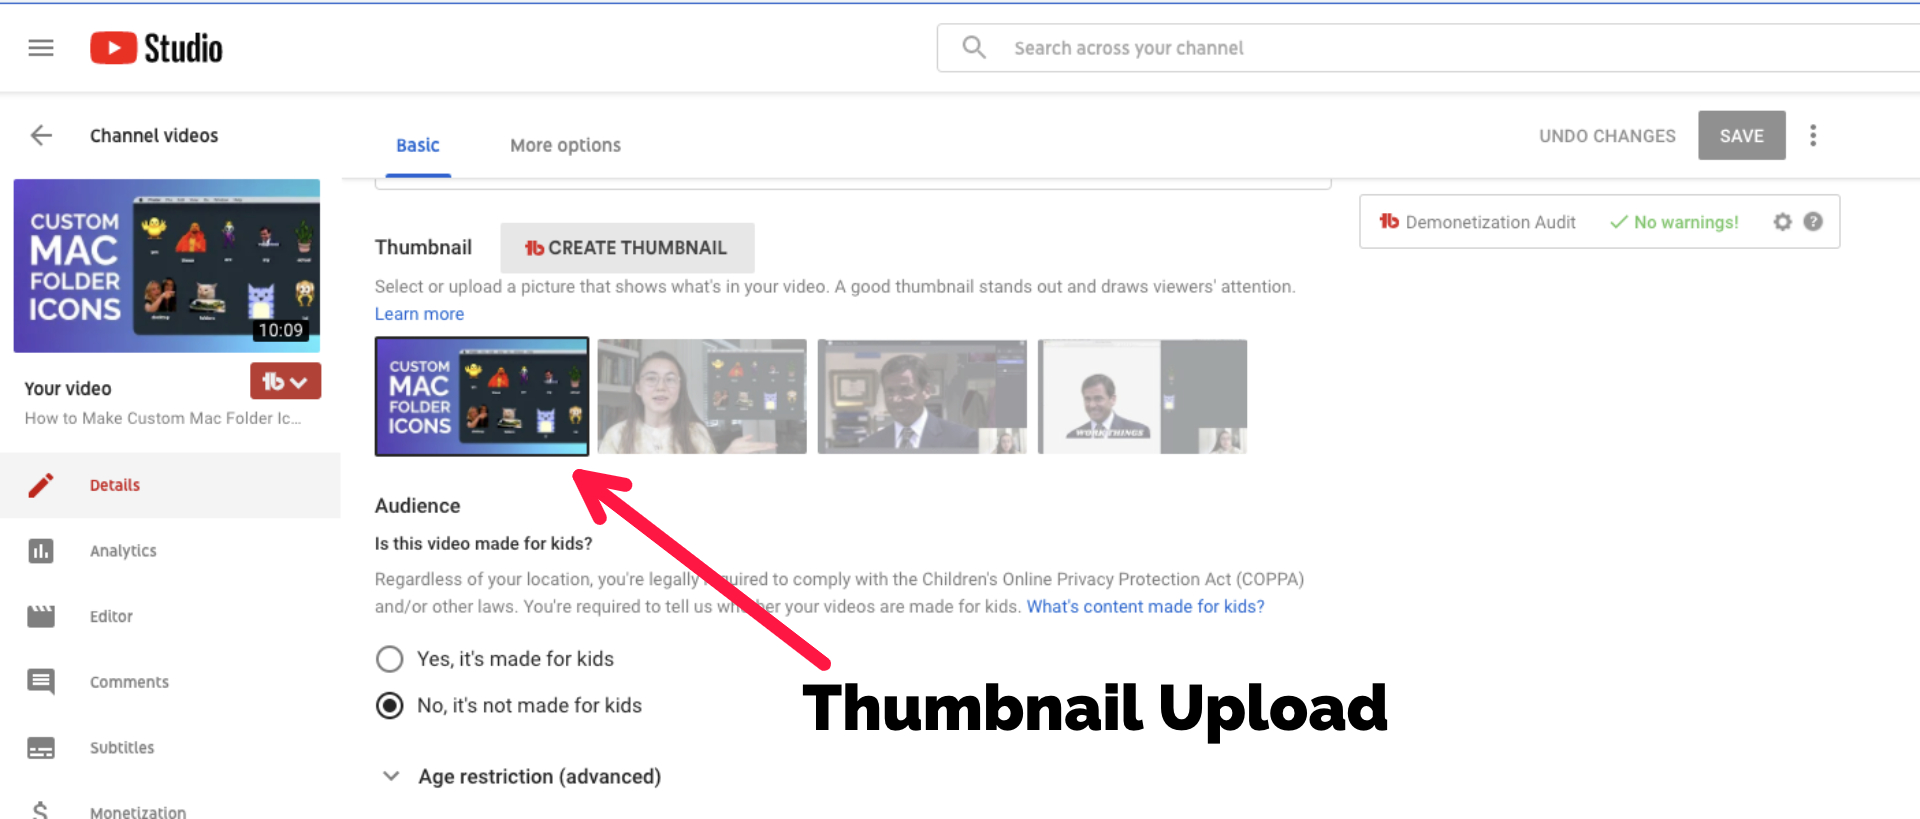 A screenshot of the thumbnail upload screen in YouTube.